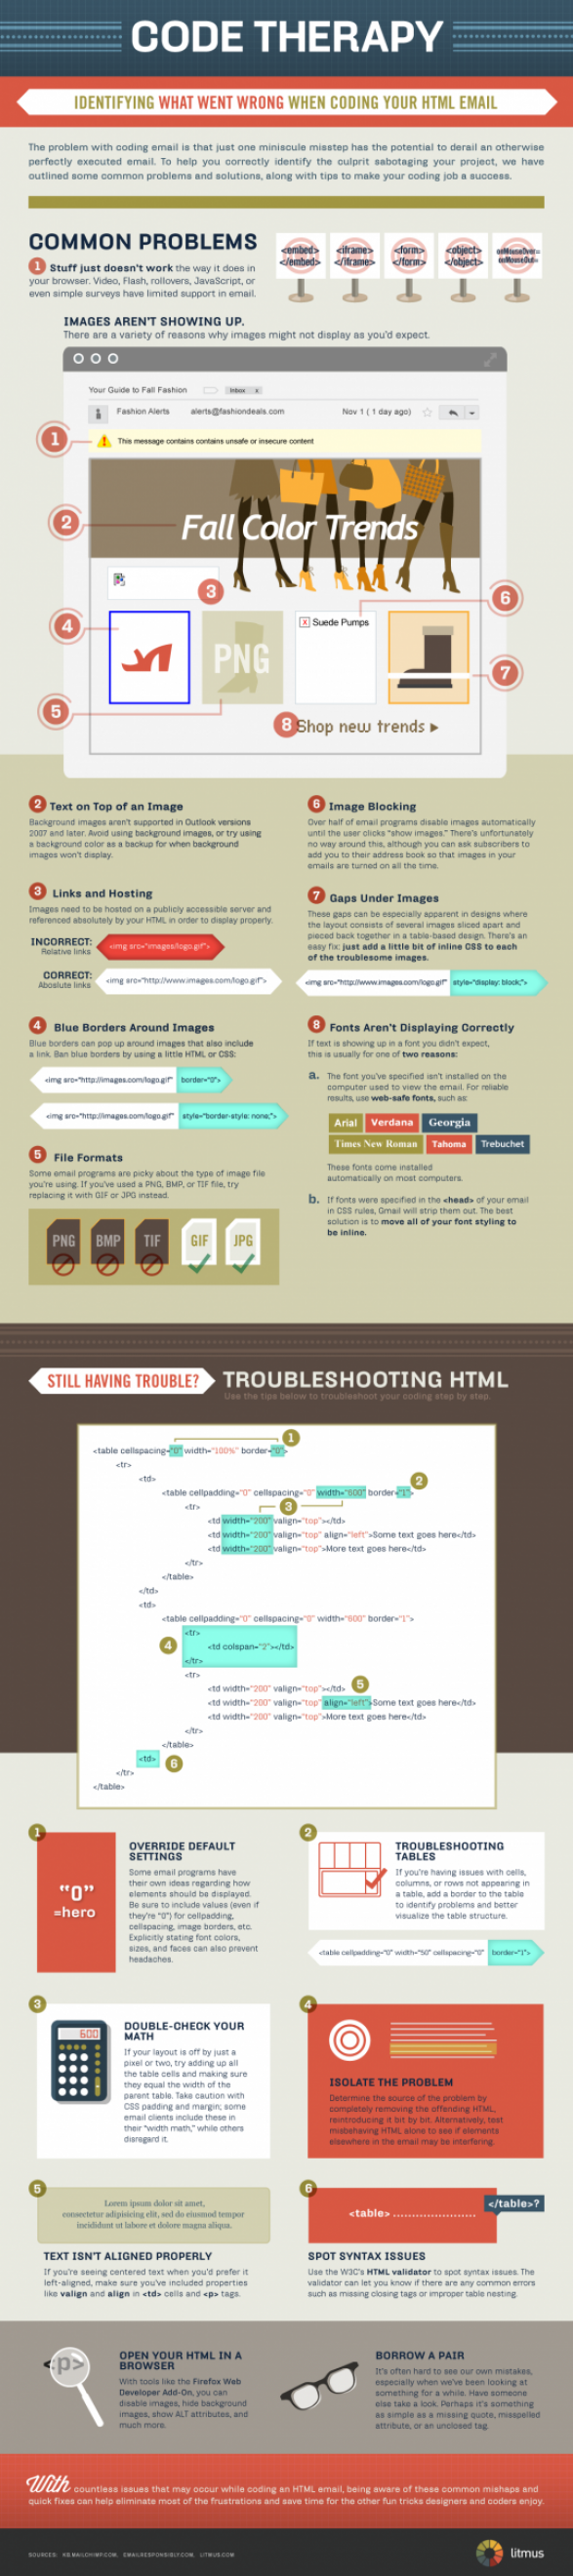 Code Therapy: 16 Tips for Troubleshooting Your HTML Email